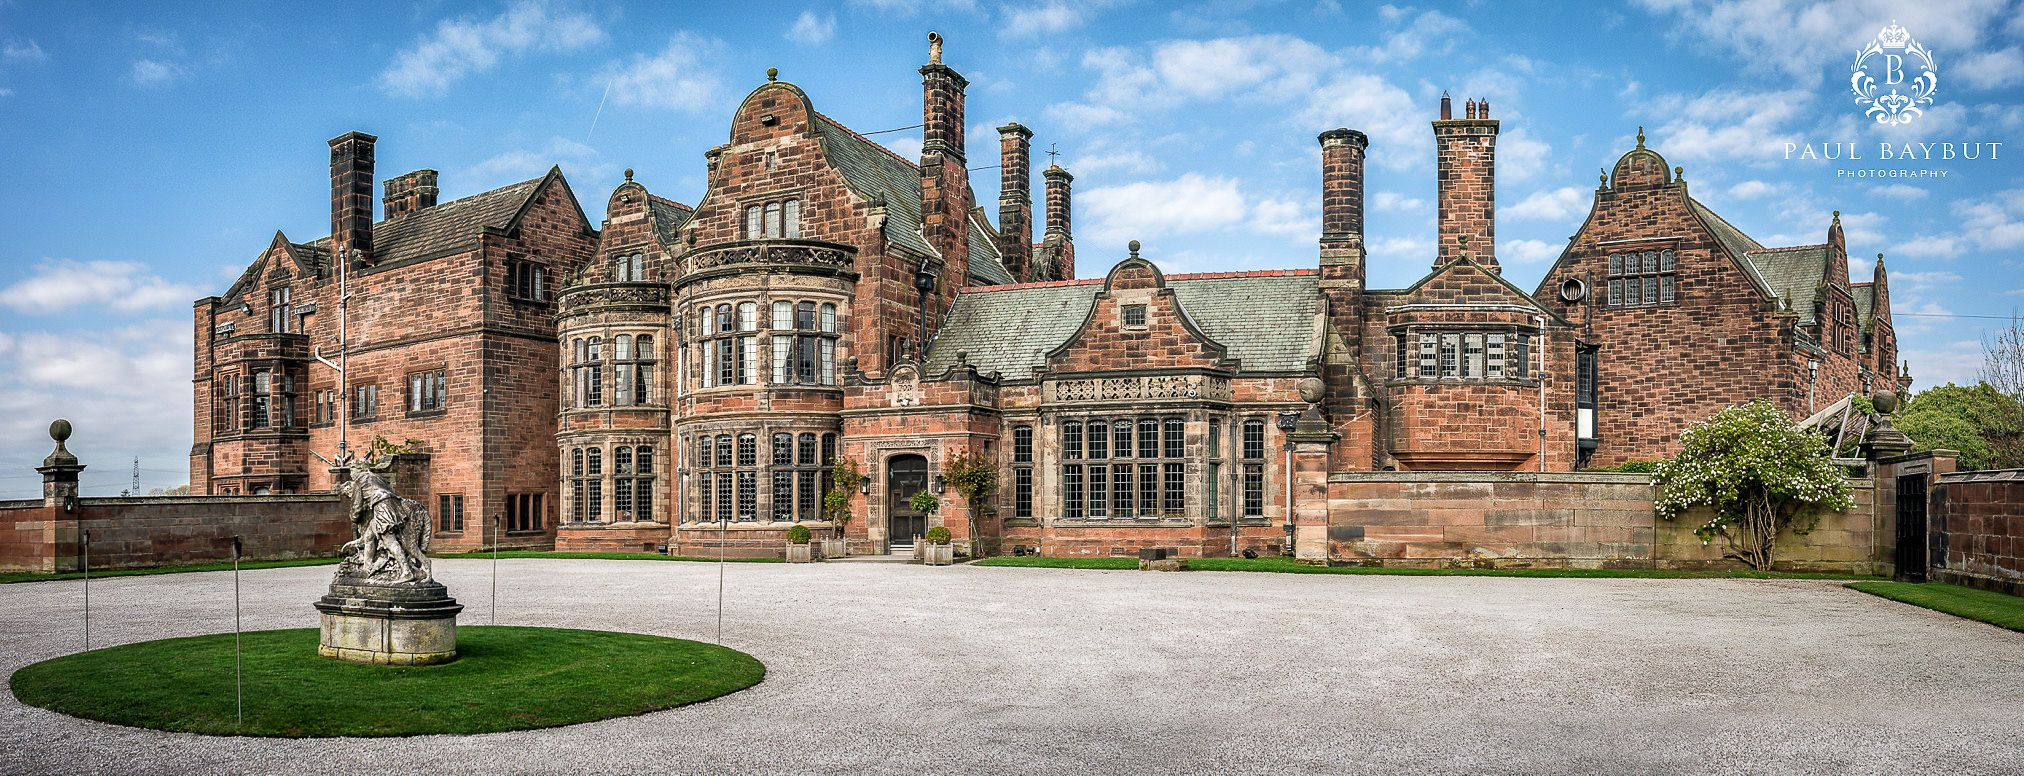 Thornton manor wedding venue exterior building view